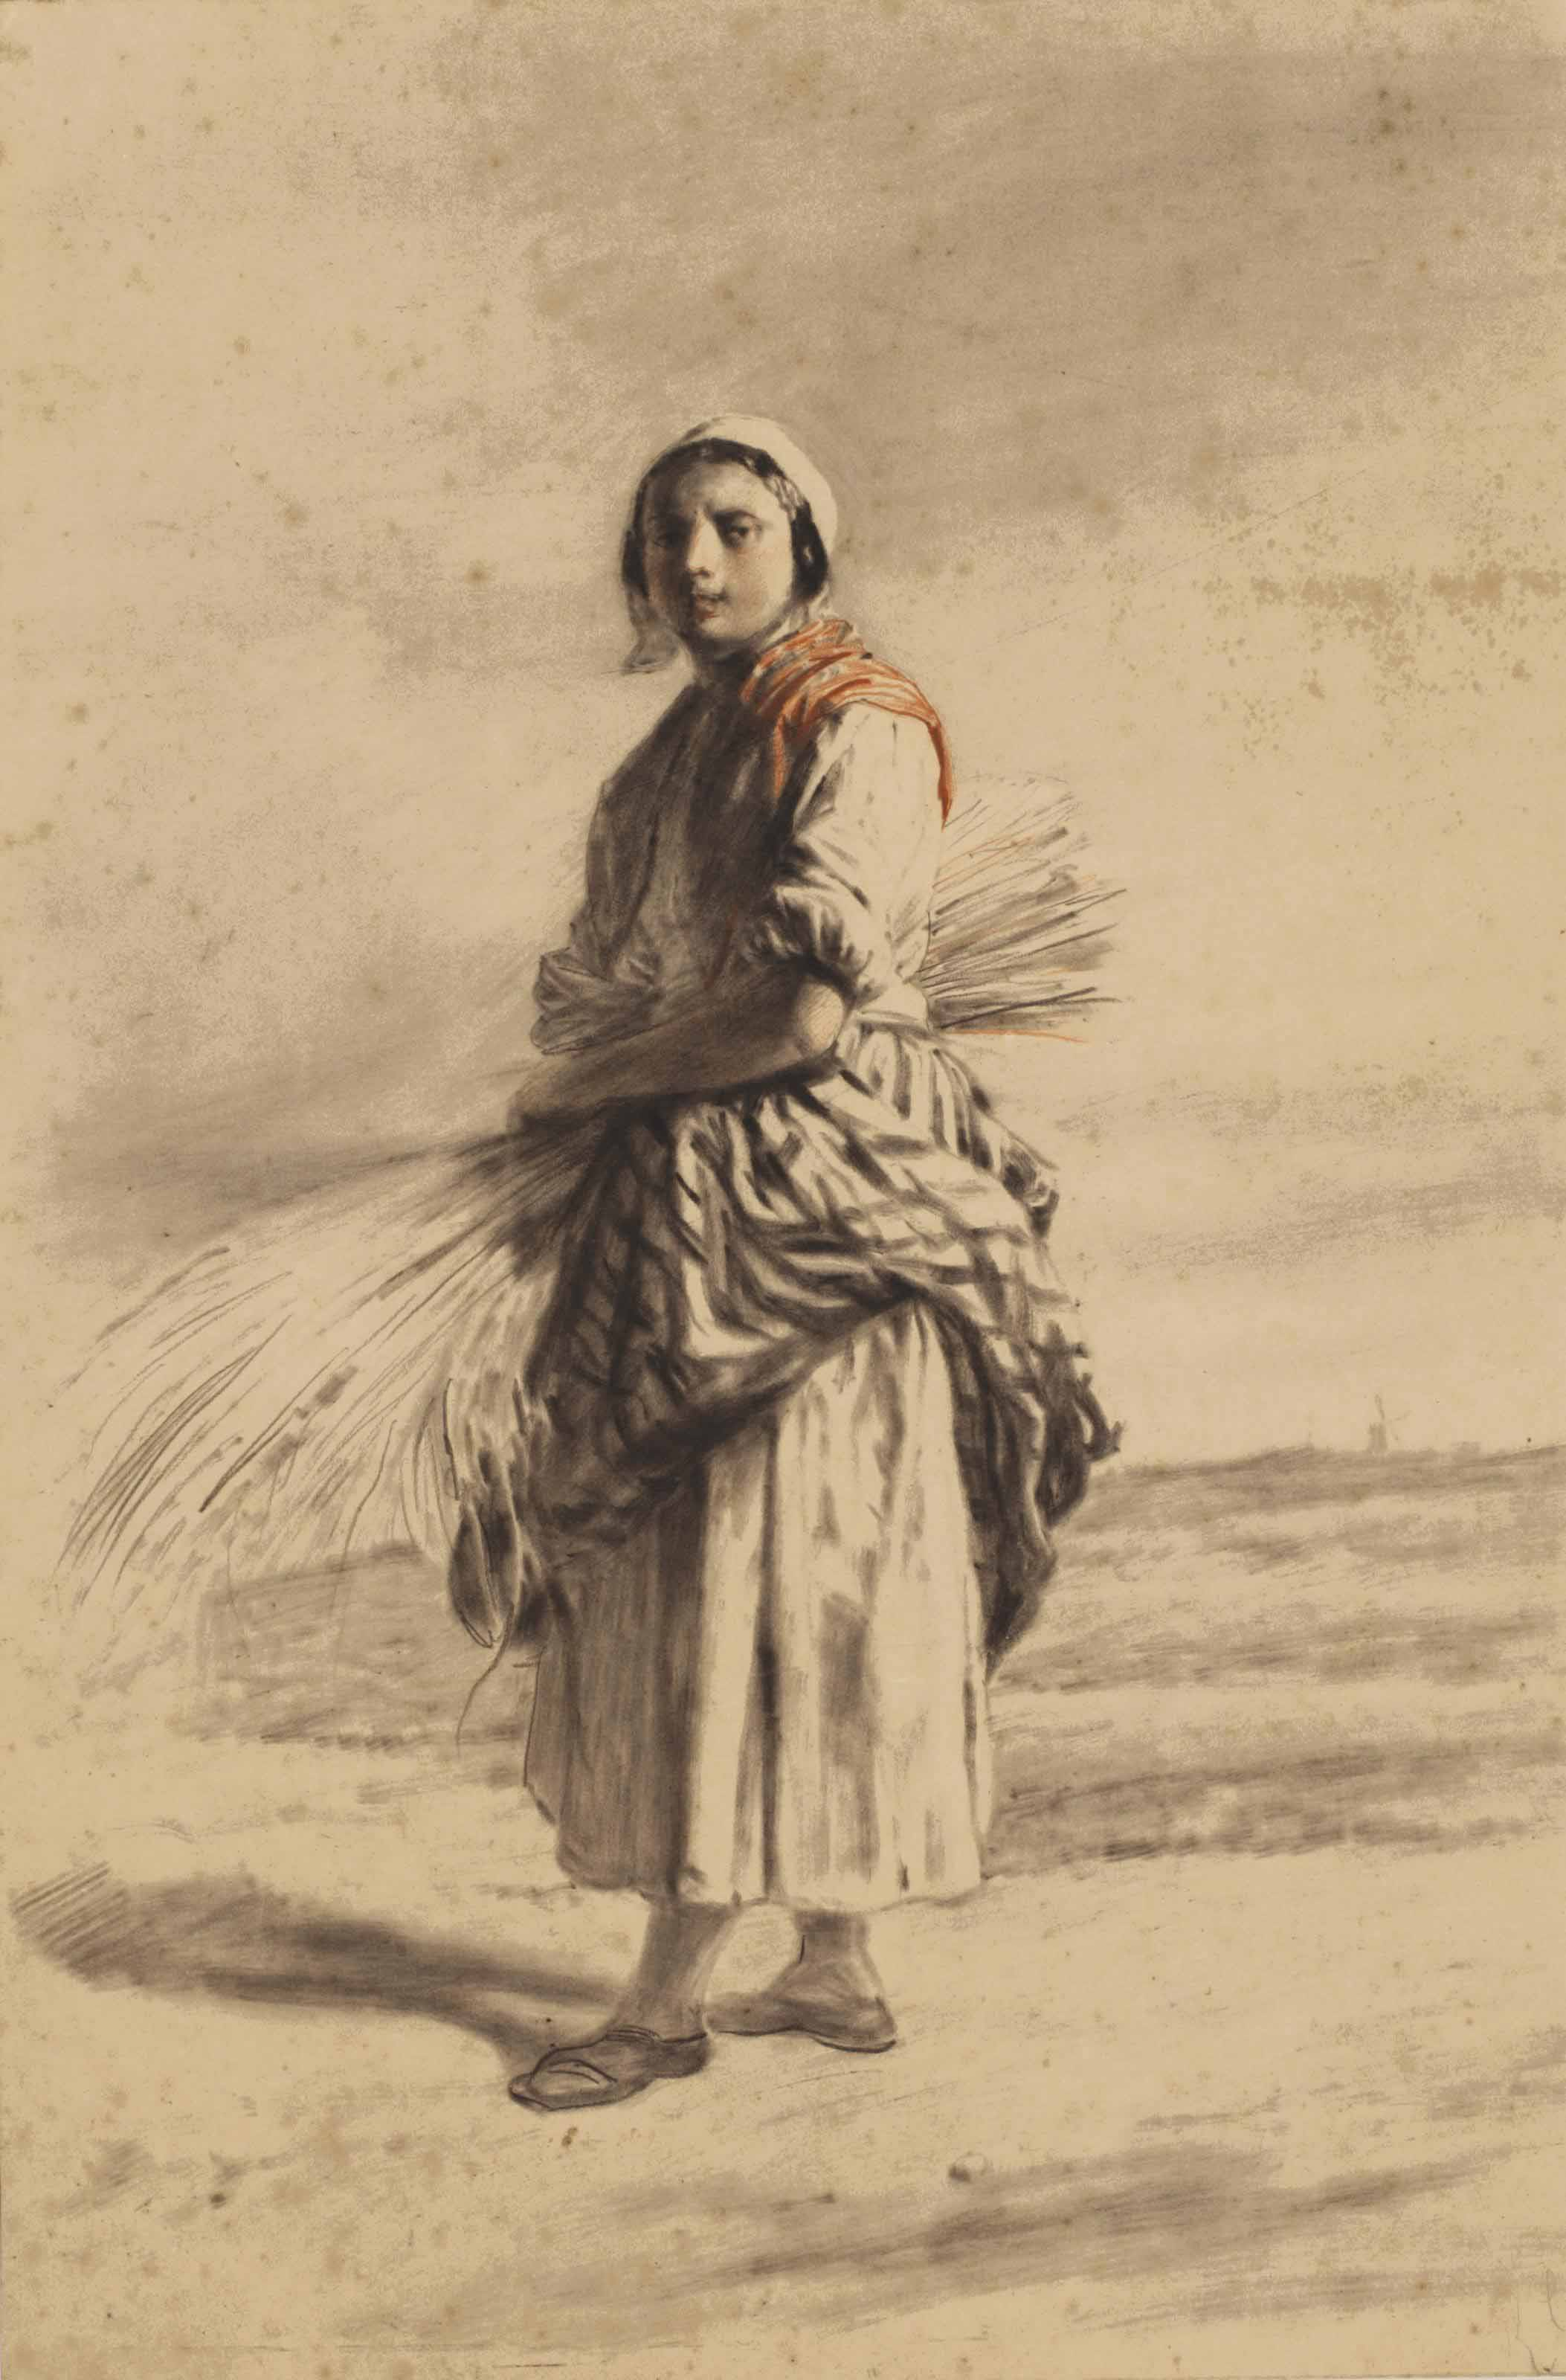 A farmer's wife with a sheaf of corn on a path